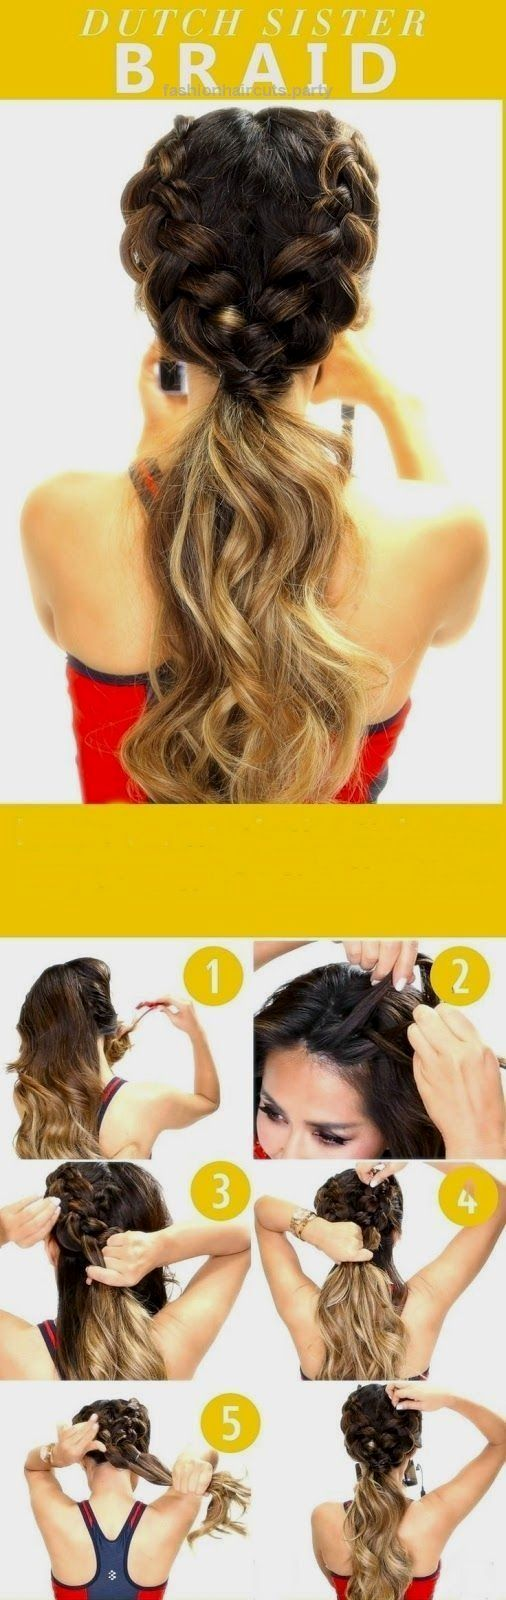 Beautiful dutch sister braid how to simple easy hairstyle hacks